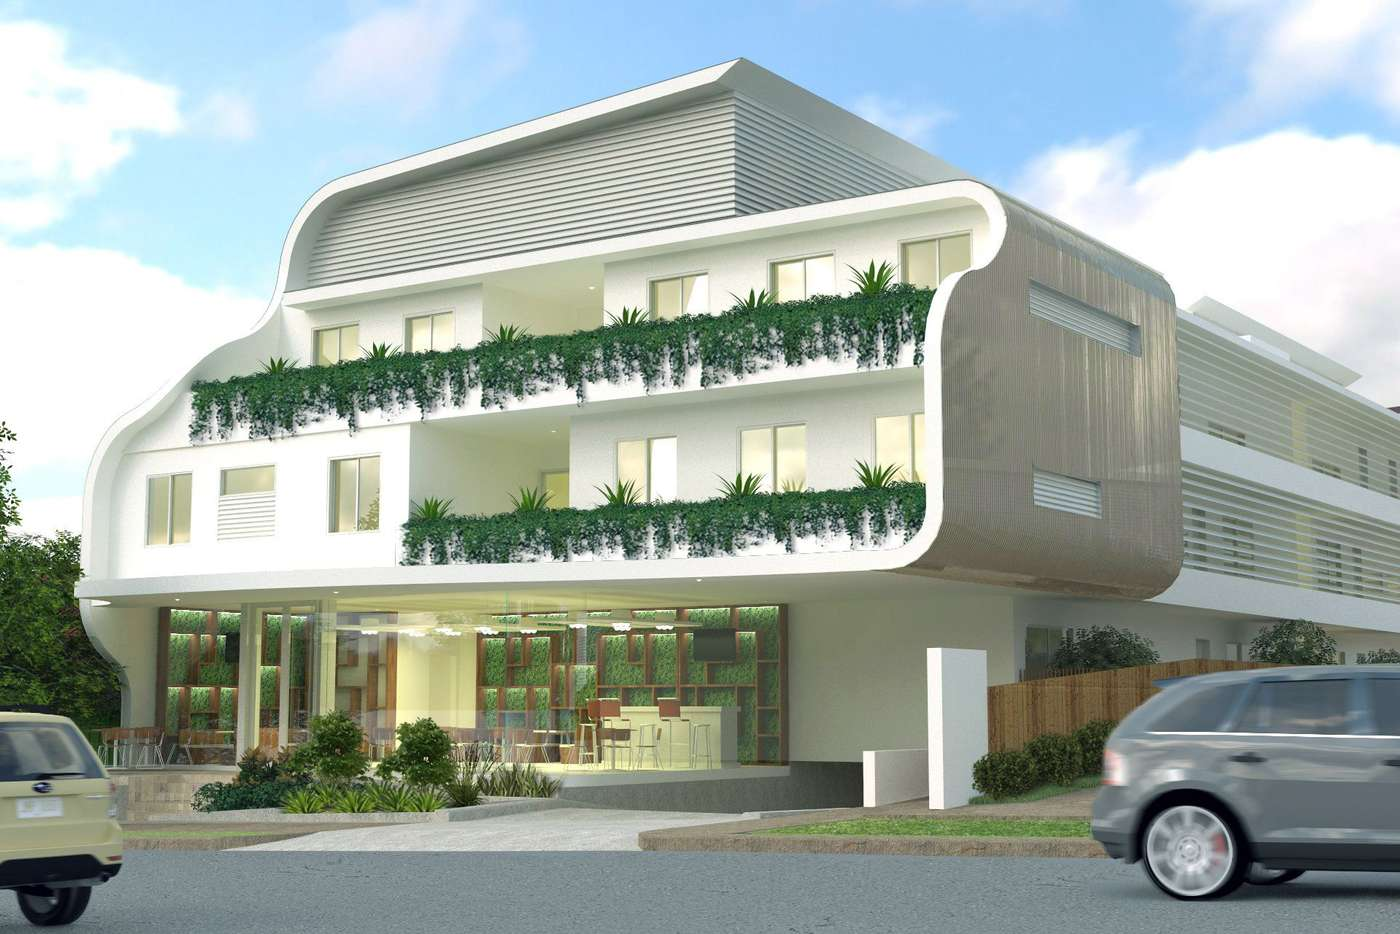 Main view of Homely apartment listing, 1-9 54 Charles Street, Warners Bay NSW 2282